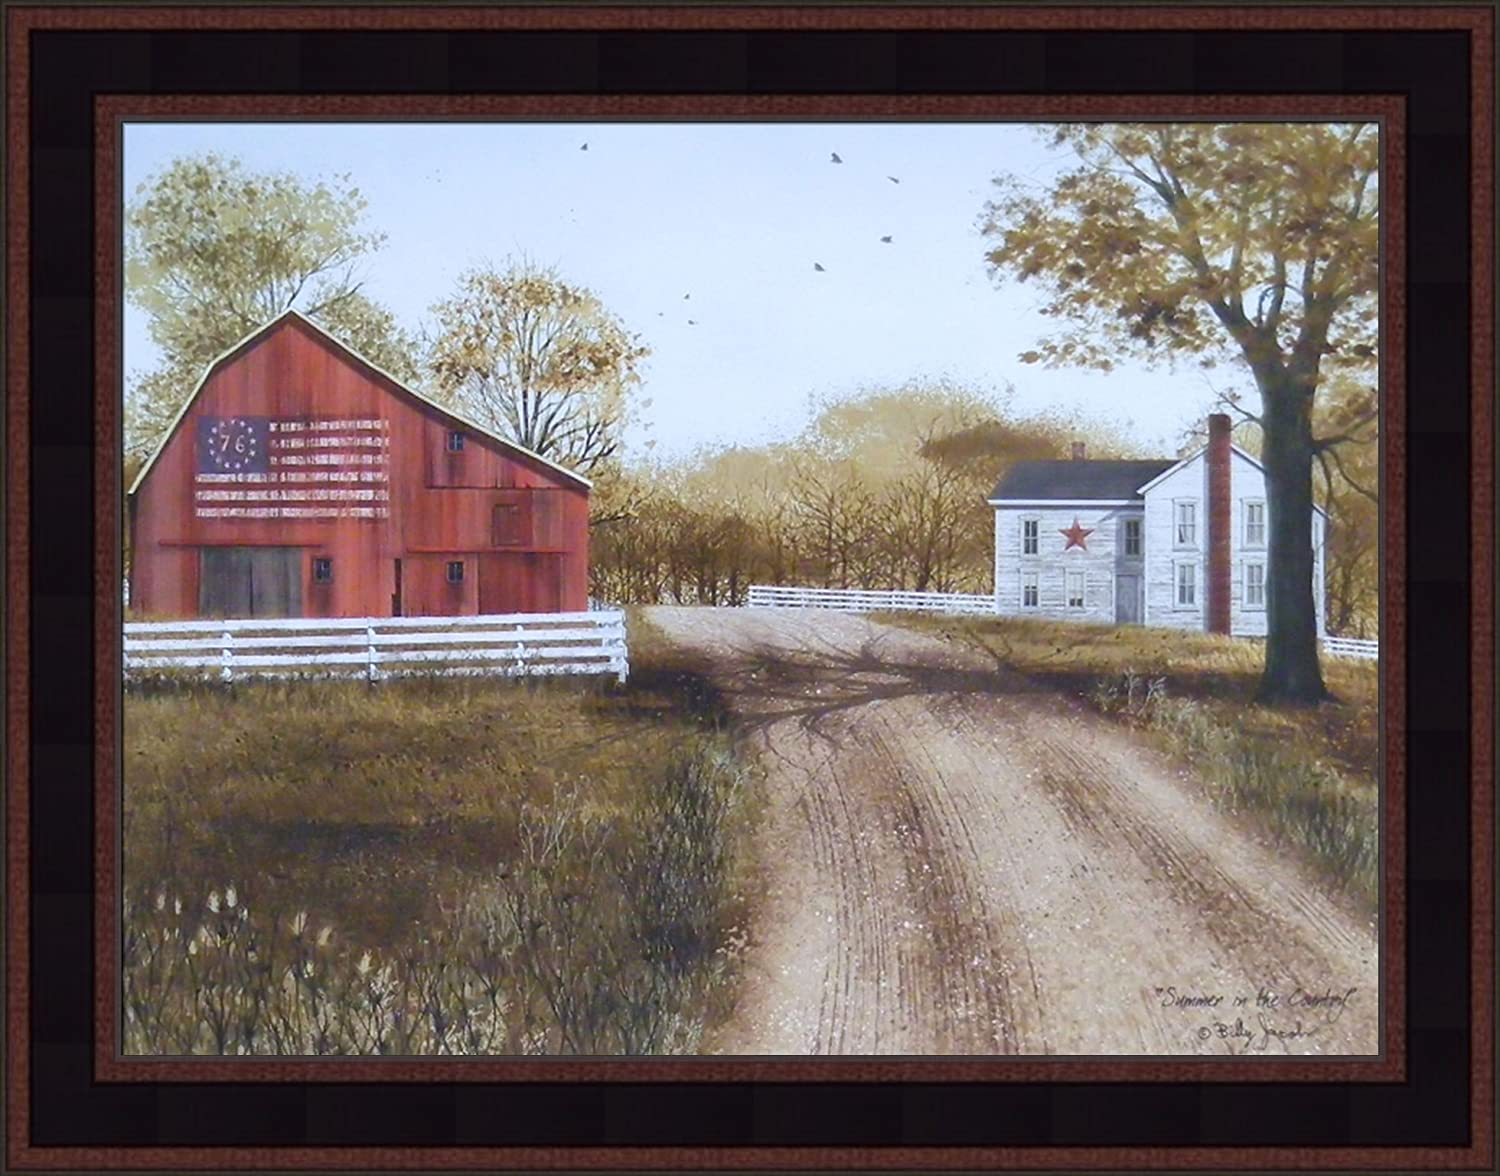 Home Cabin Décor Summer in The Country by Billy Jacobs 15x19 Patriotic 1976 Bicentennial Flag Barn Farm Primitive Folk Art Framed Picture